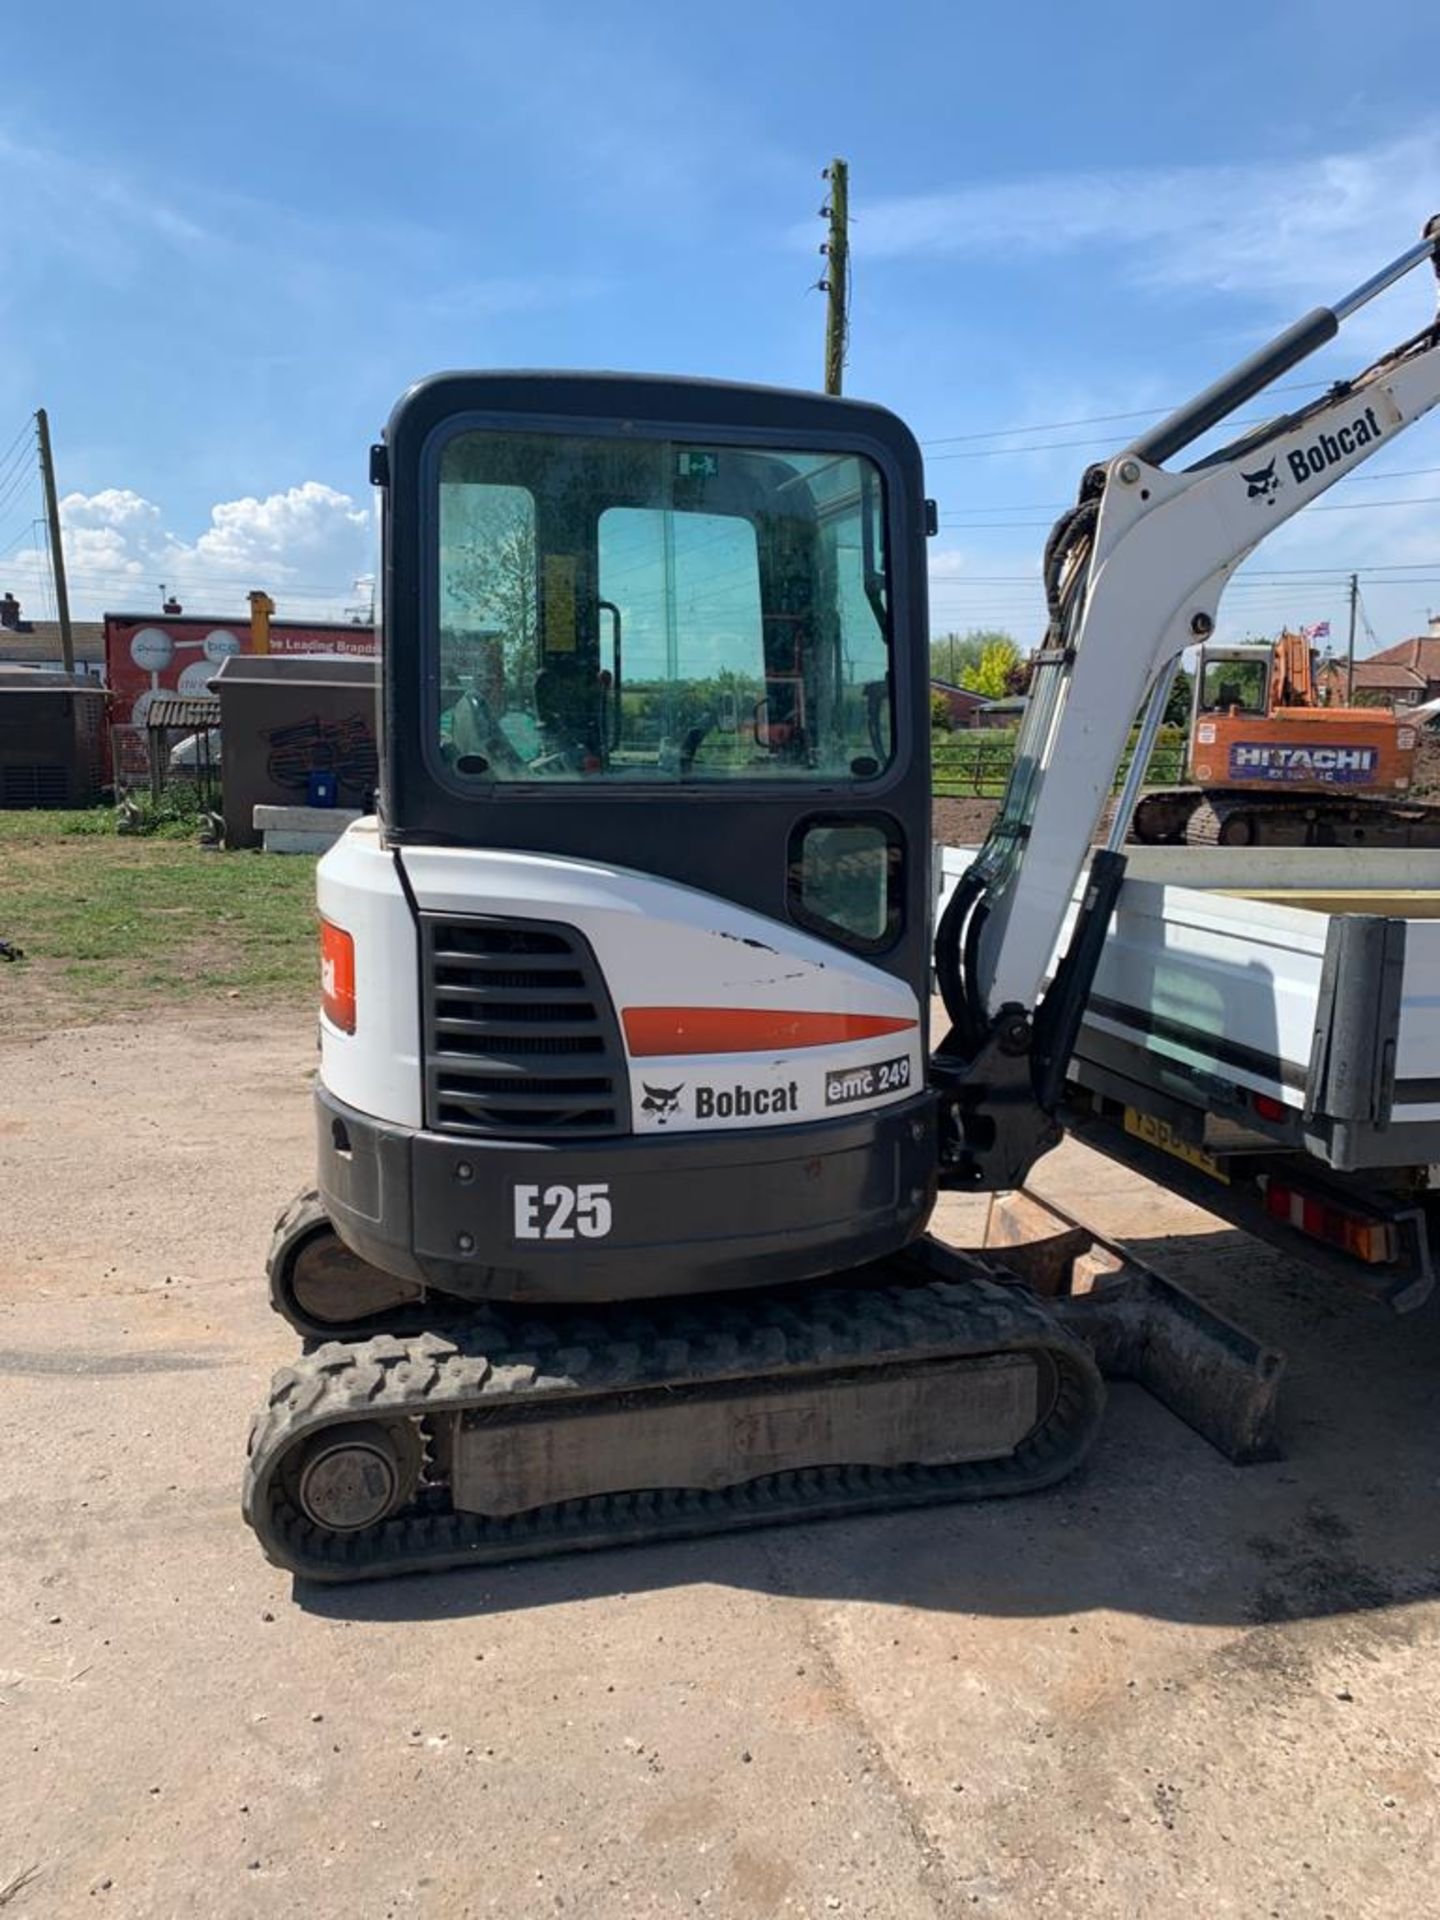 2014 BOBCAT E25 RUBBER TRACKED COMPACT EXCAVATOR / DIGGER, 15.3 KW, MASS 2516 KG *PLUS VAT* - Image 2 of 19